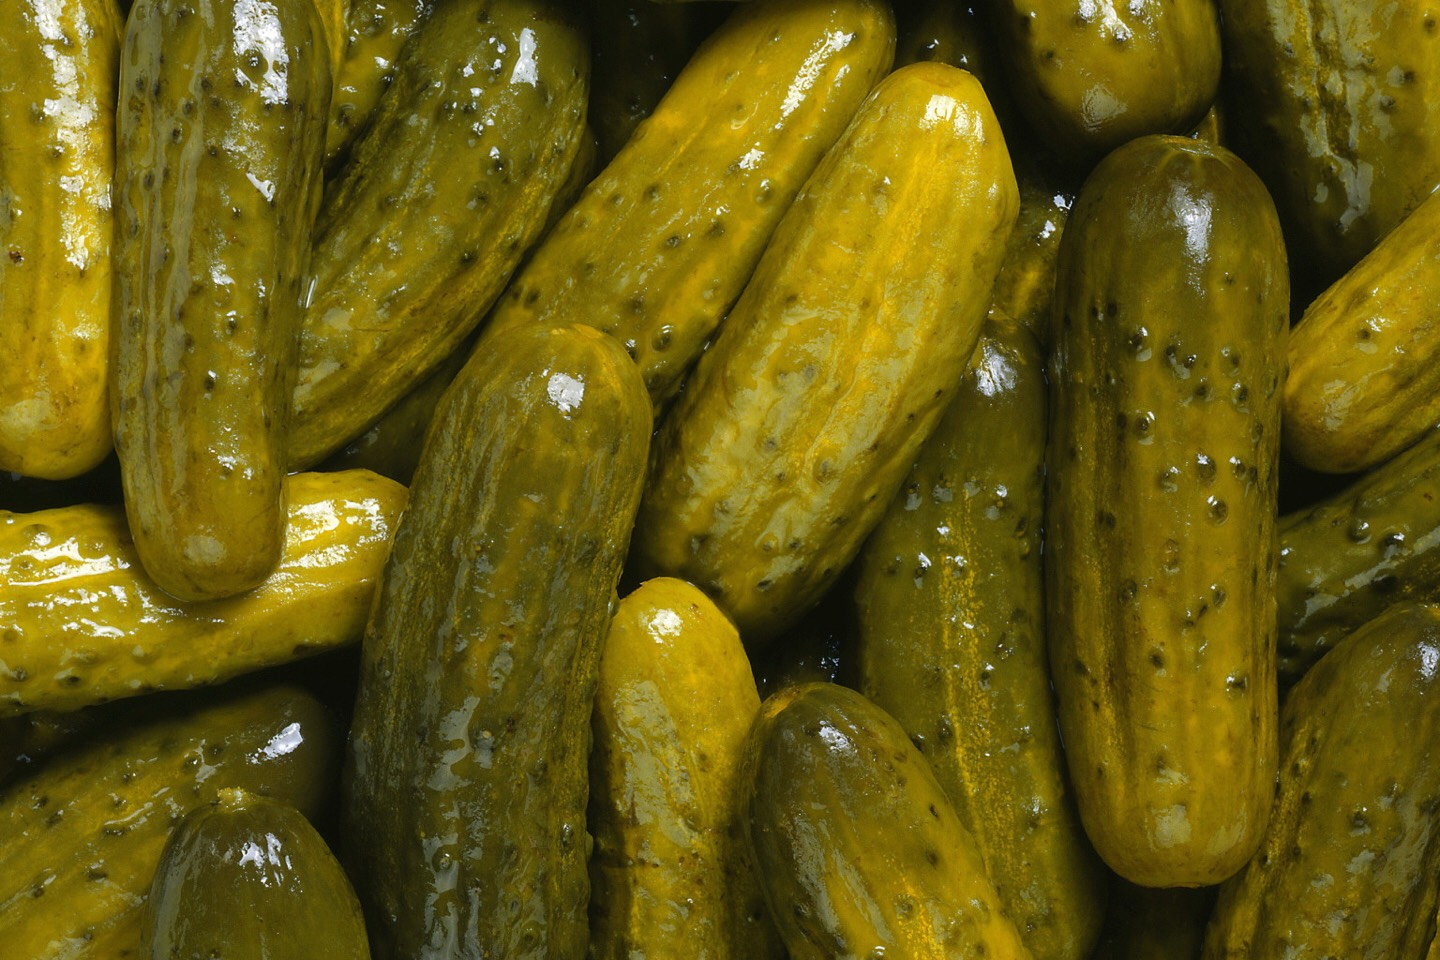 Pickles are great to help loose weight! It's a VEGETABLE, and the vinegar and another artificial flavoring, contain little to no calories.